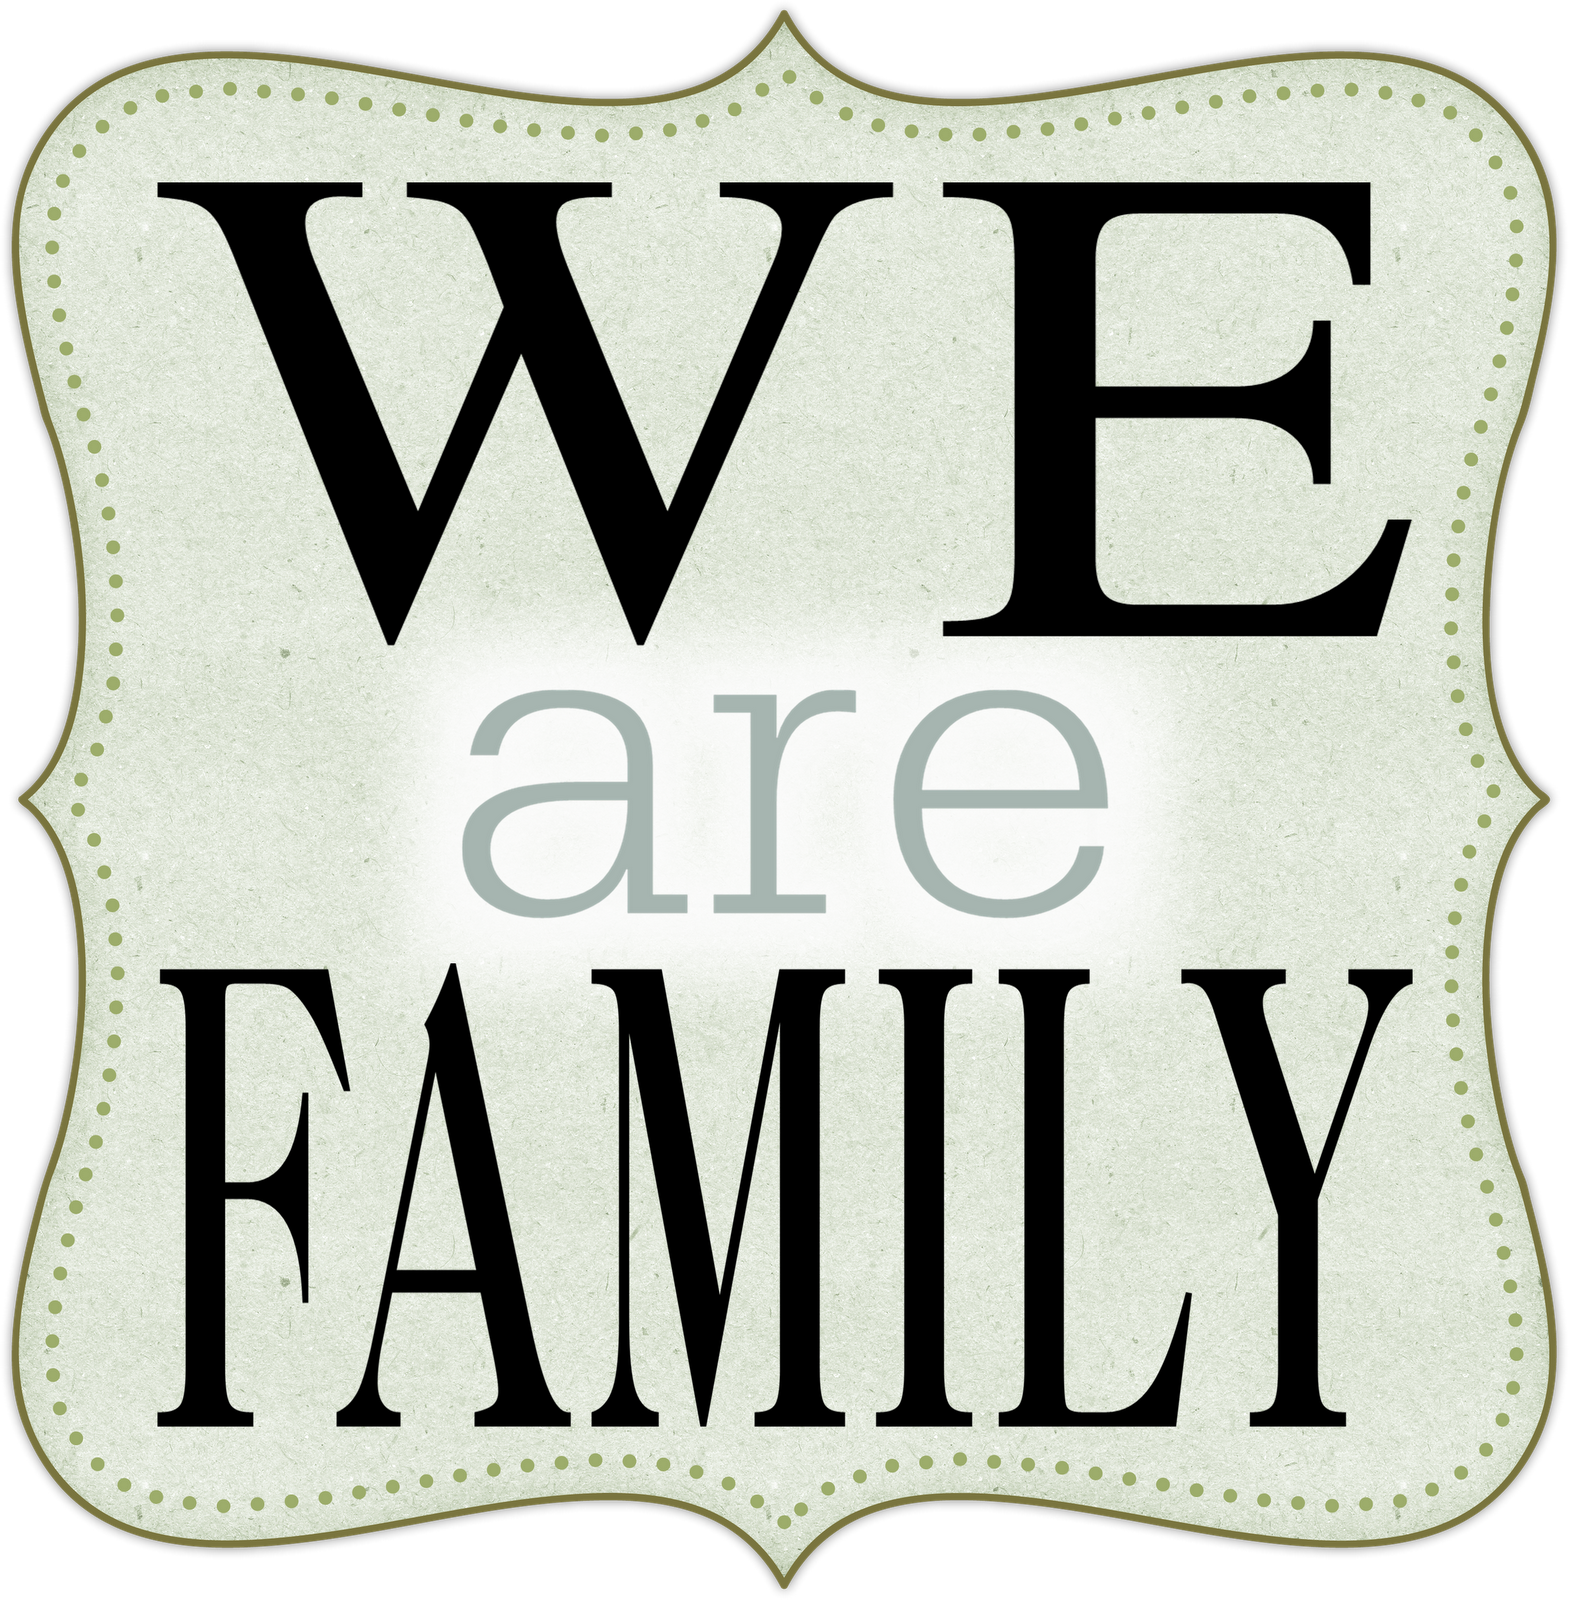 Welcome to our family clipart